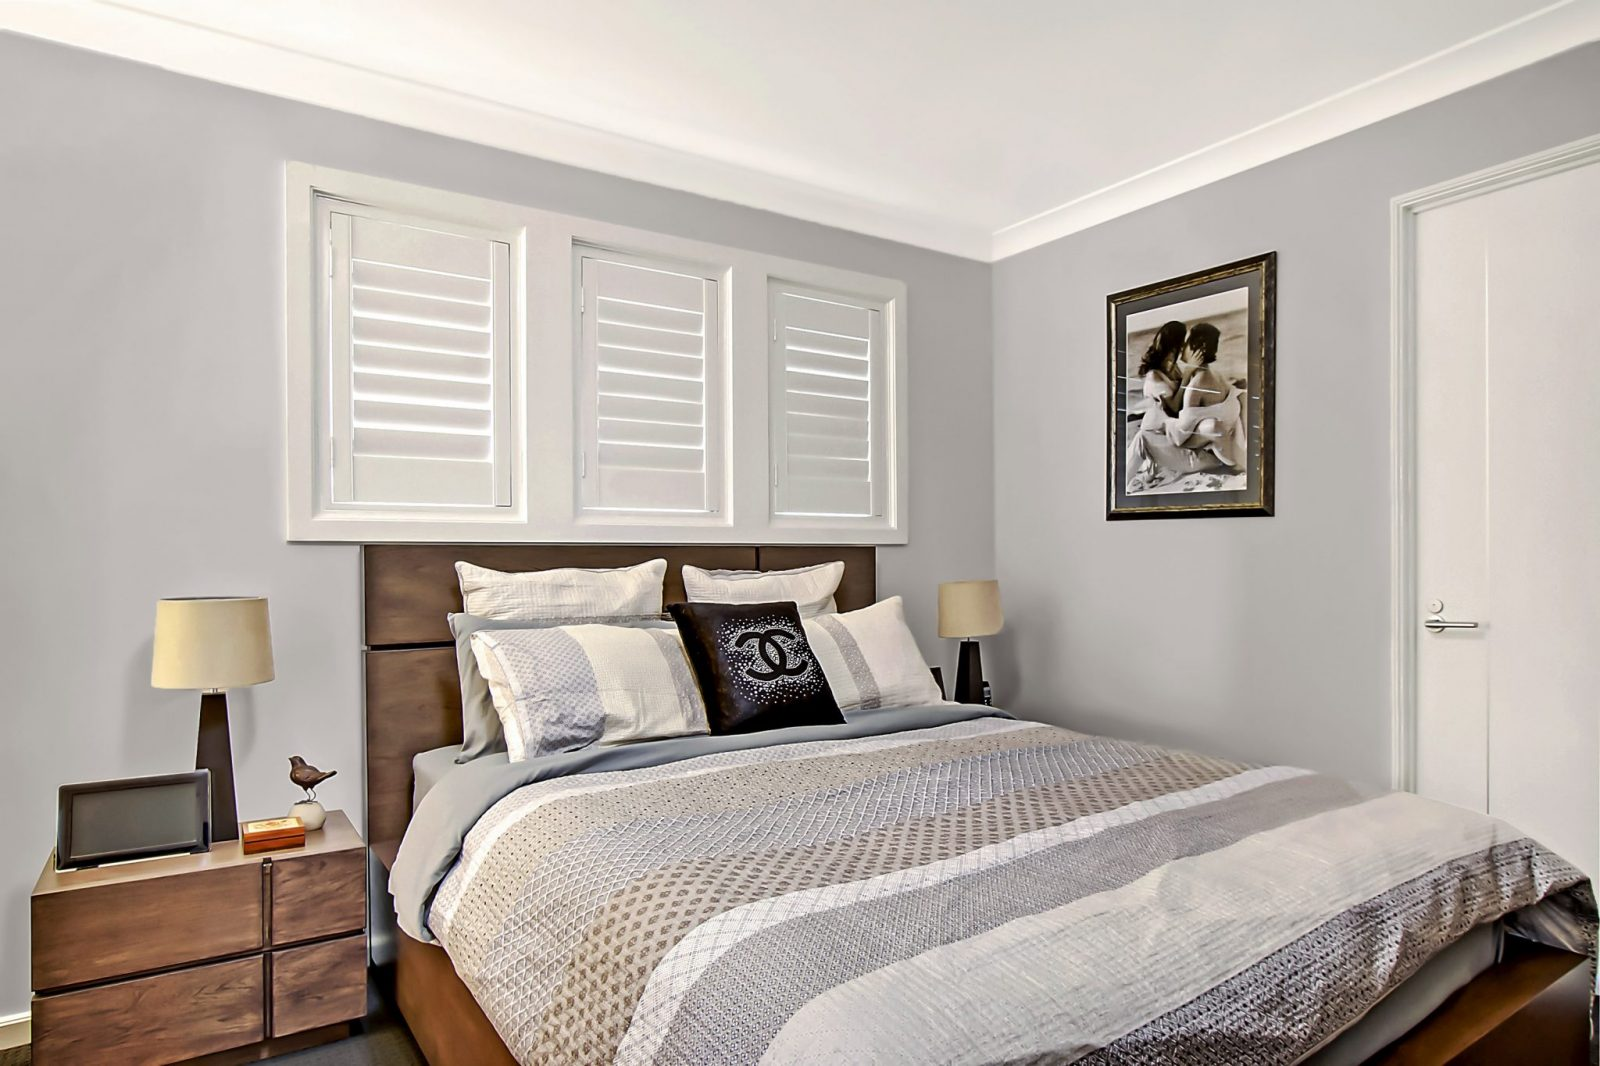 Plantation Shutters Vs Curtains And Blinds Which Is Better